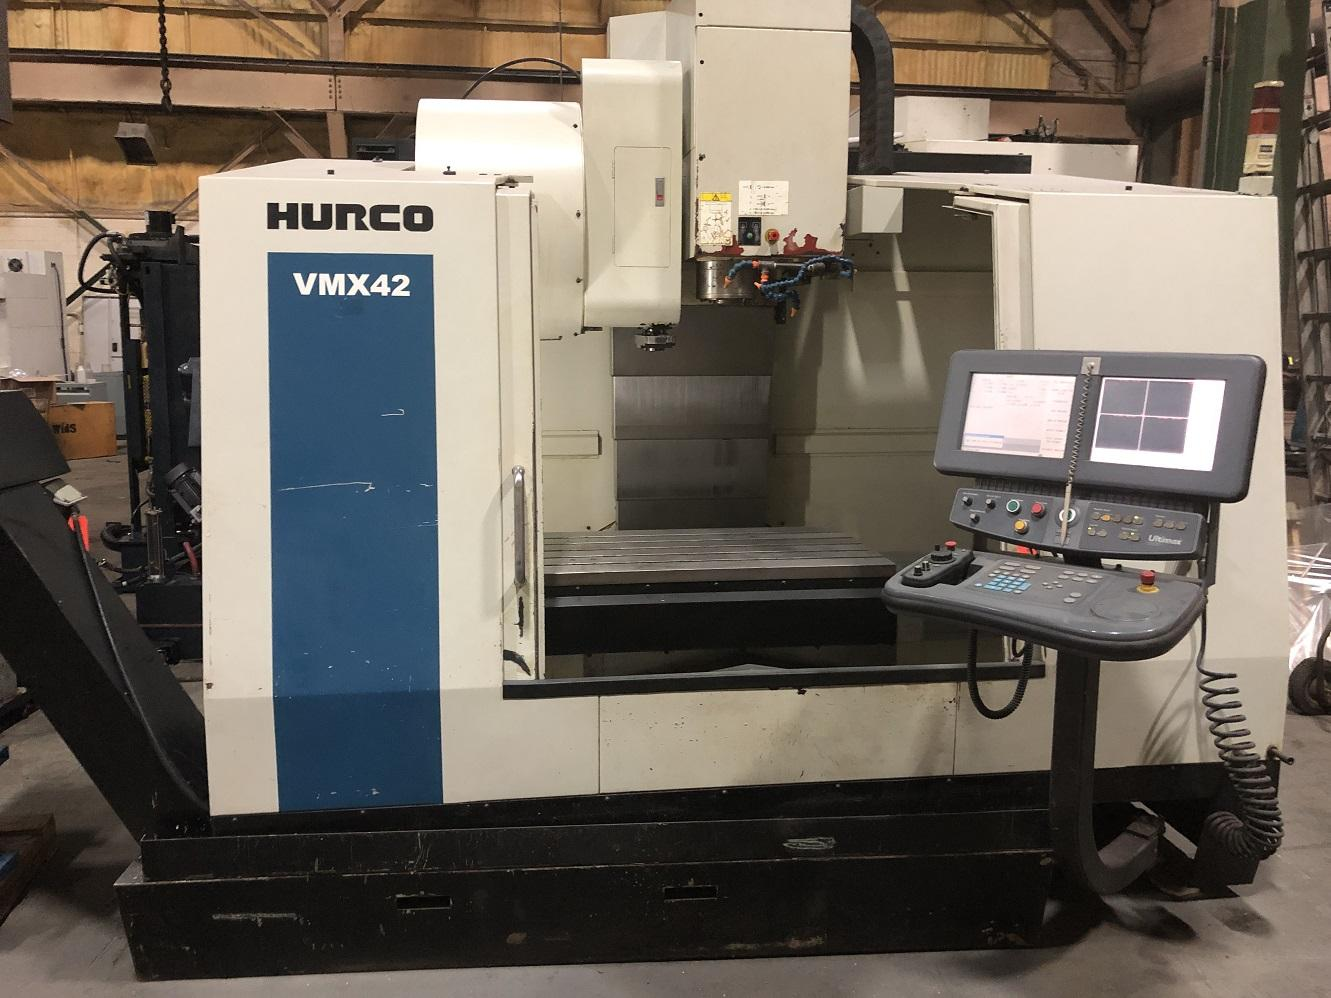 Hurco VMX42 CNC Vertical Machining Center w/WinMax Control, 10K